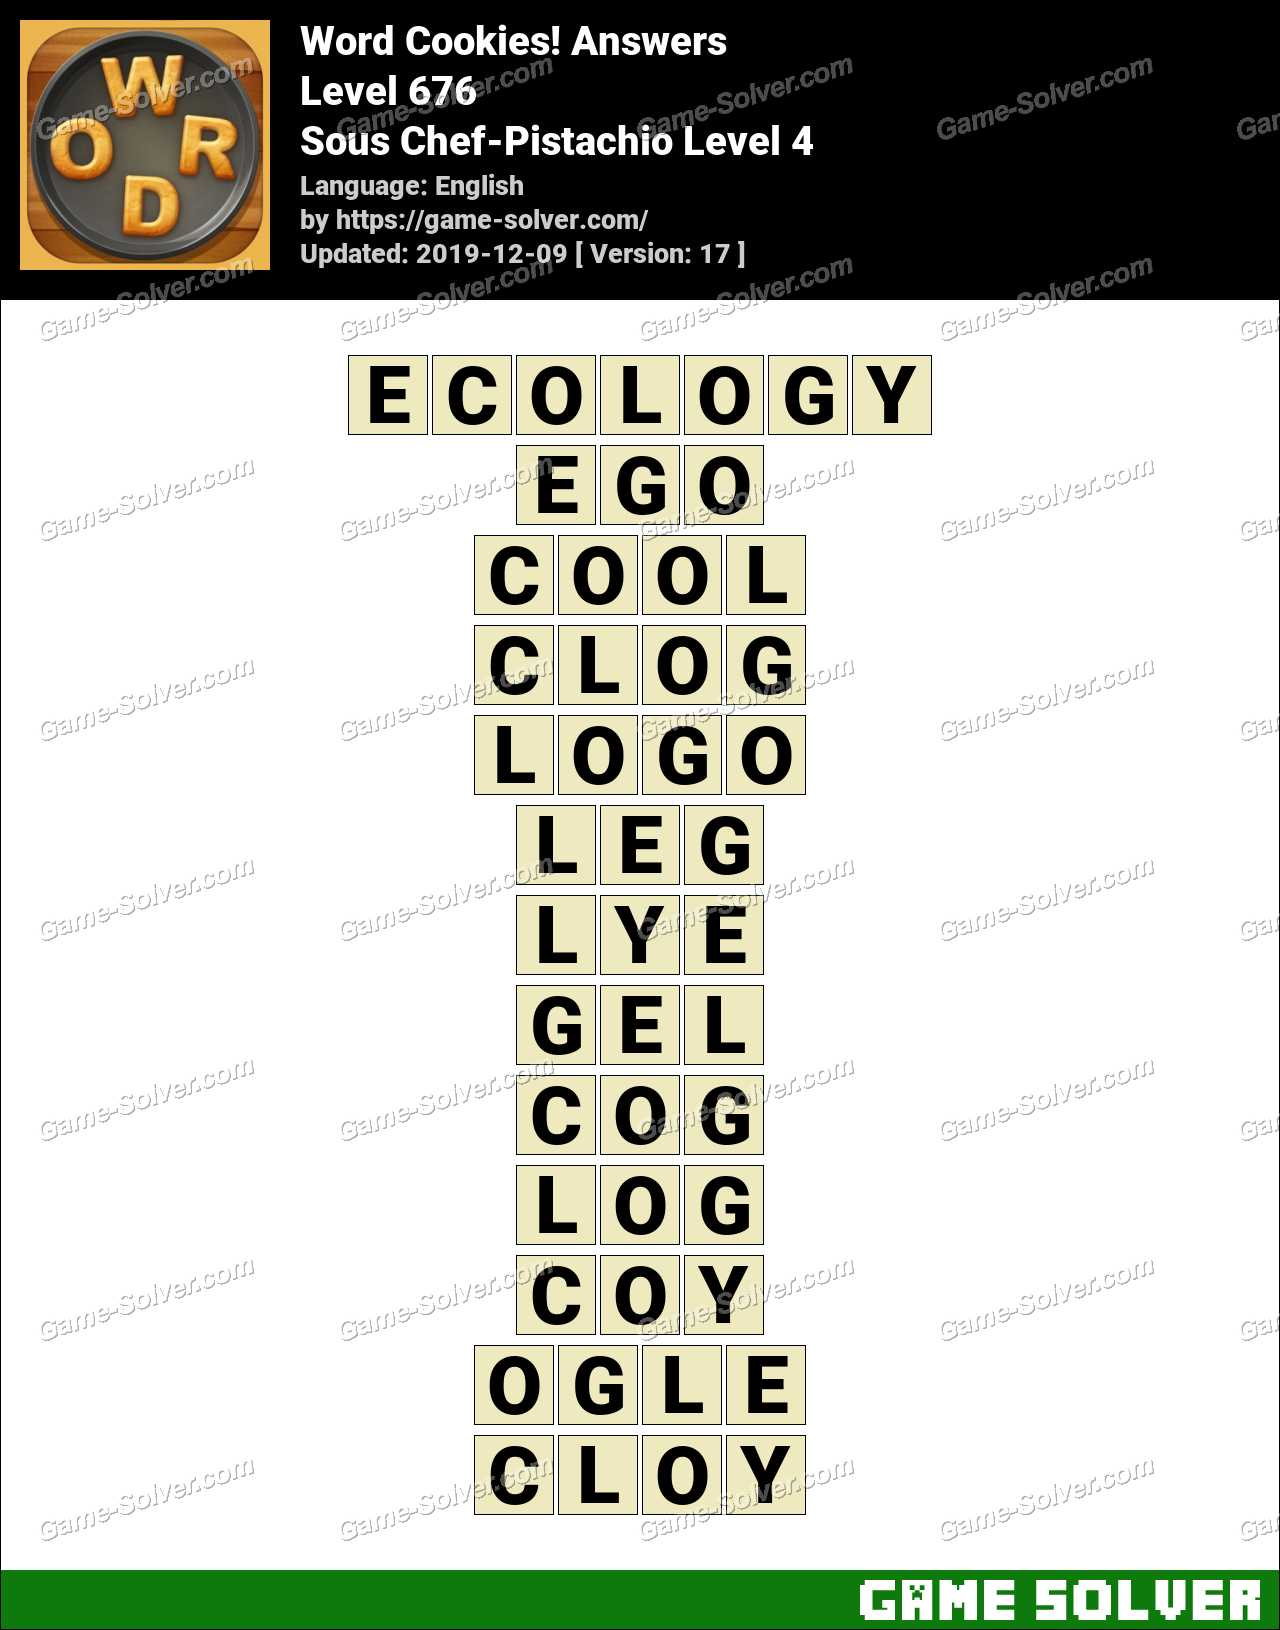 Word Cookies Sous Chef-Pistachio Level 4 Answers